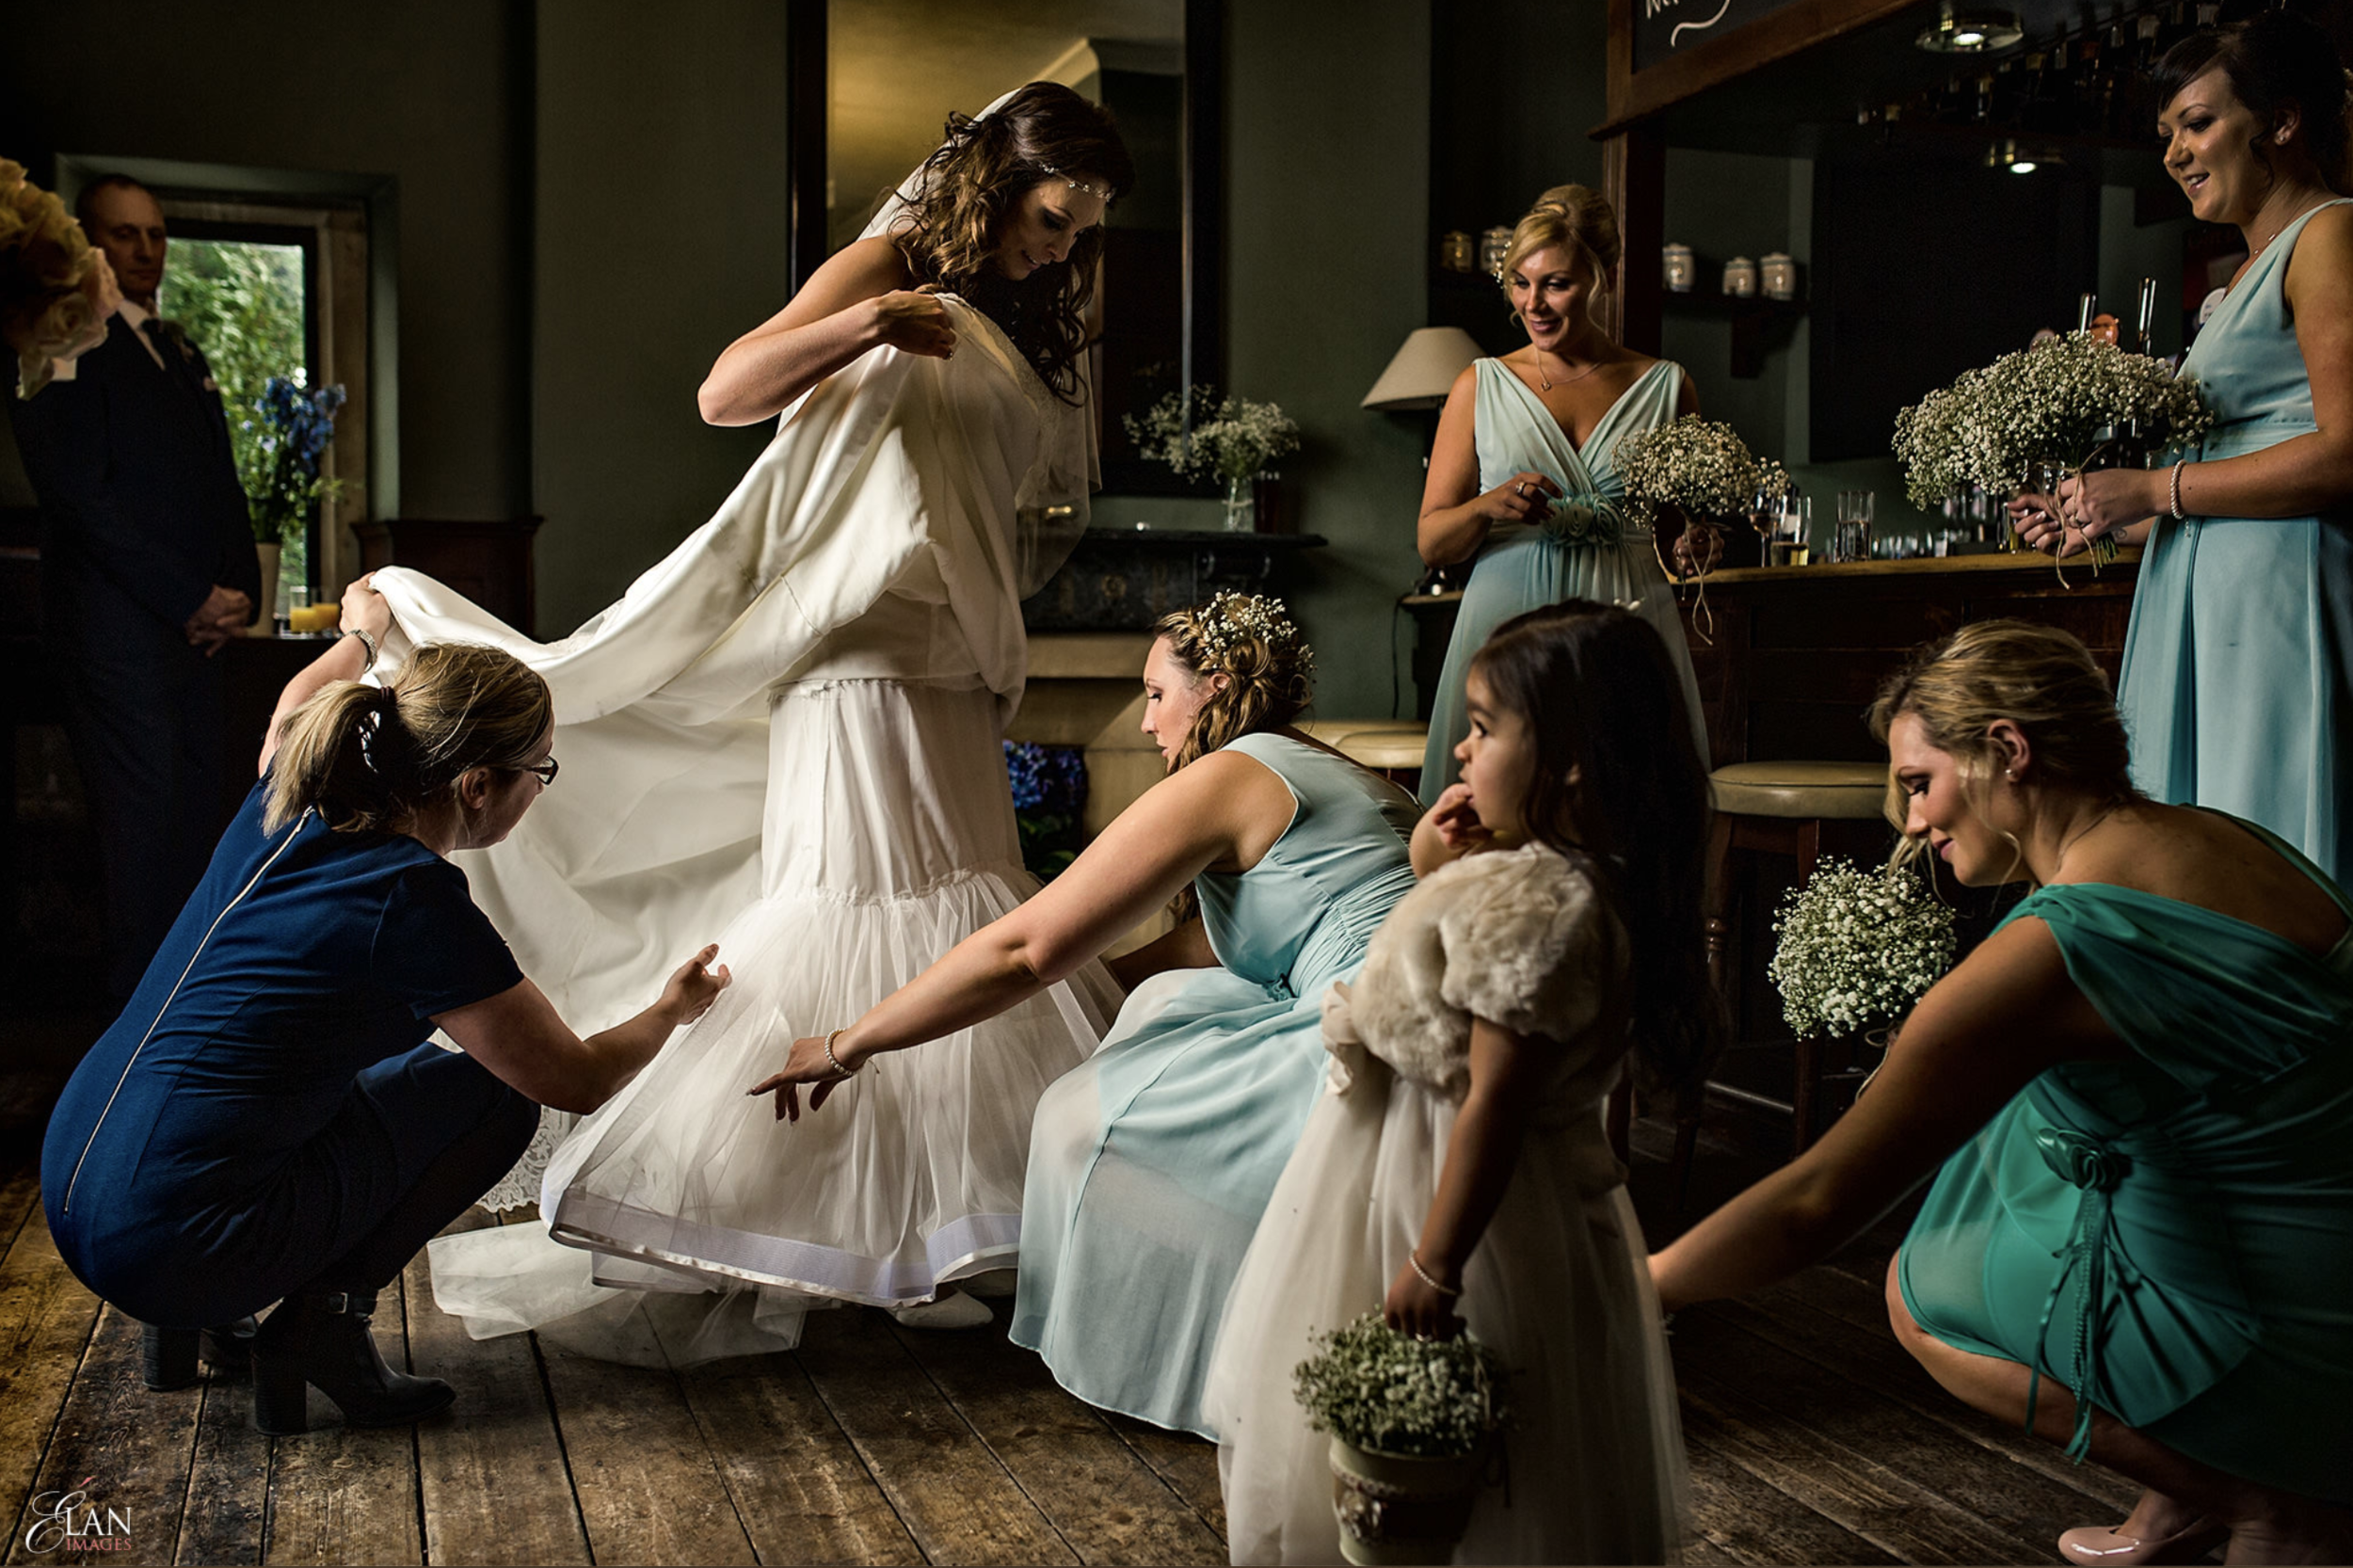 Get Married 2019 from £55.00 per person - It's not too late to tie the knot in 2019, especially when it's only £55 per person!